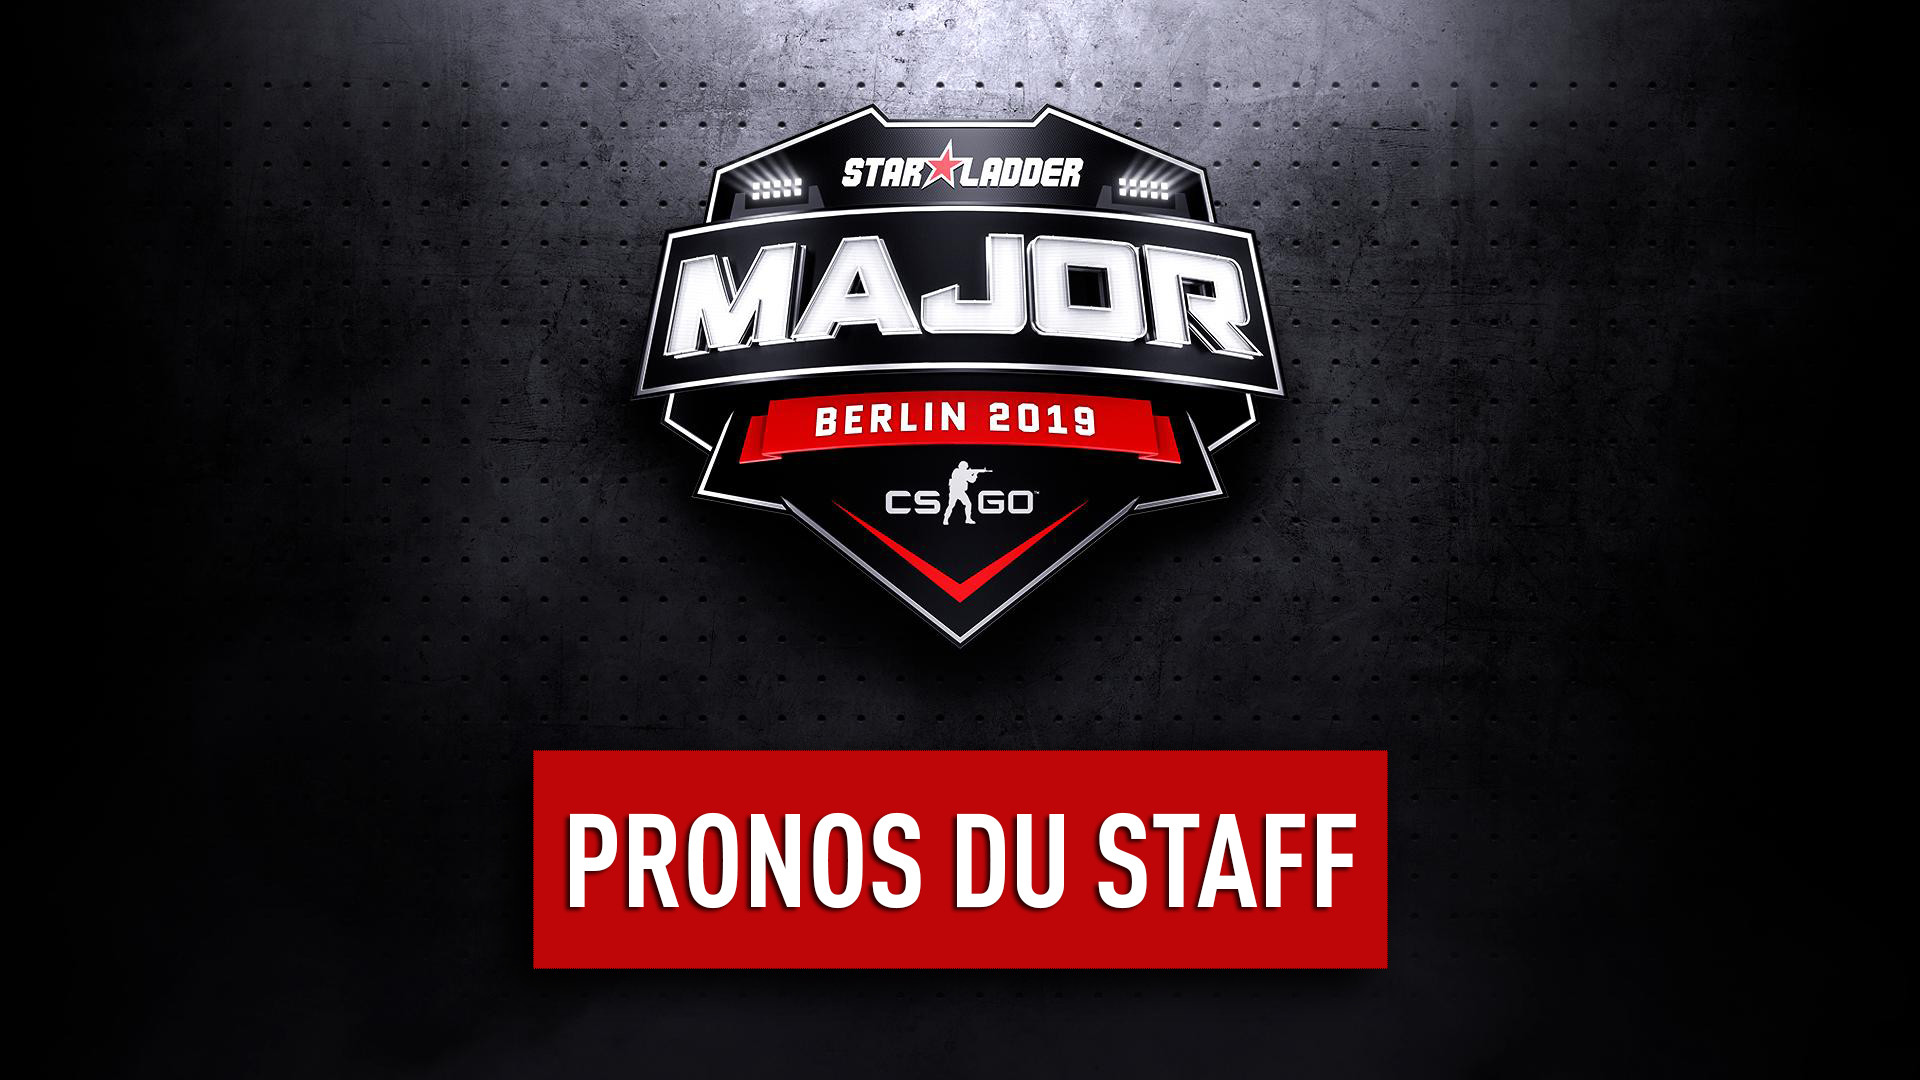 StarLadder Major Berlin : Pronos du staff pour le premier tour